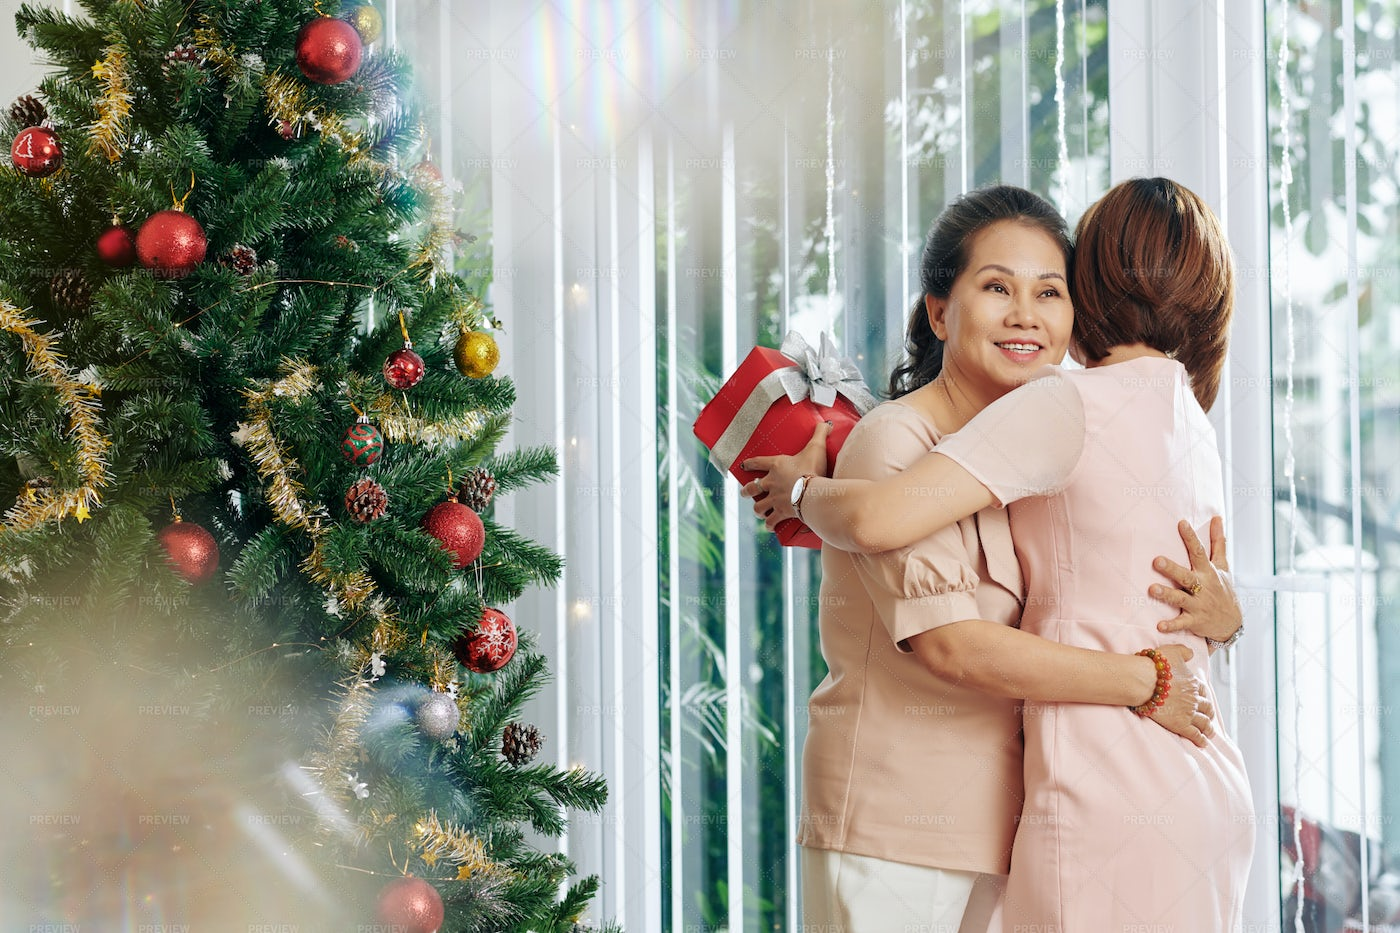 Mother And Daughter On Christmas: Stock Photos